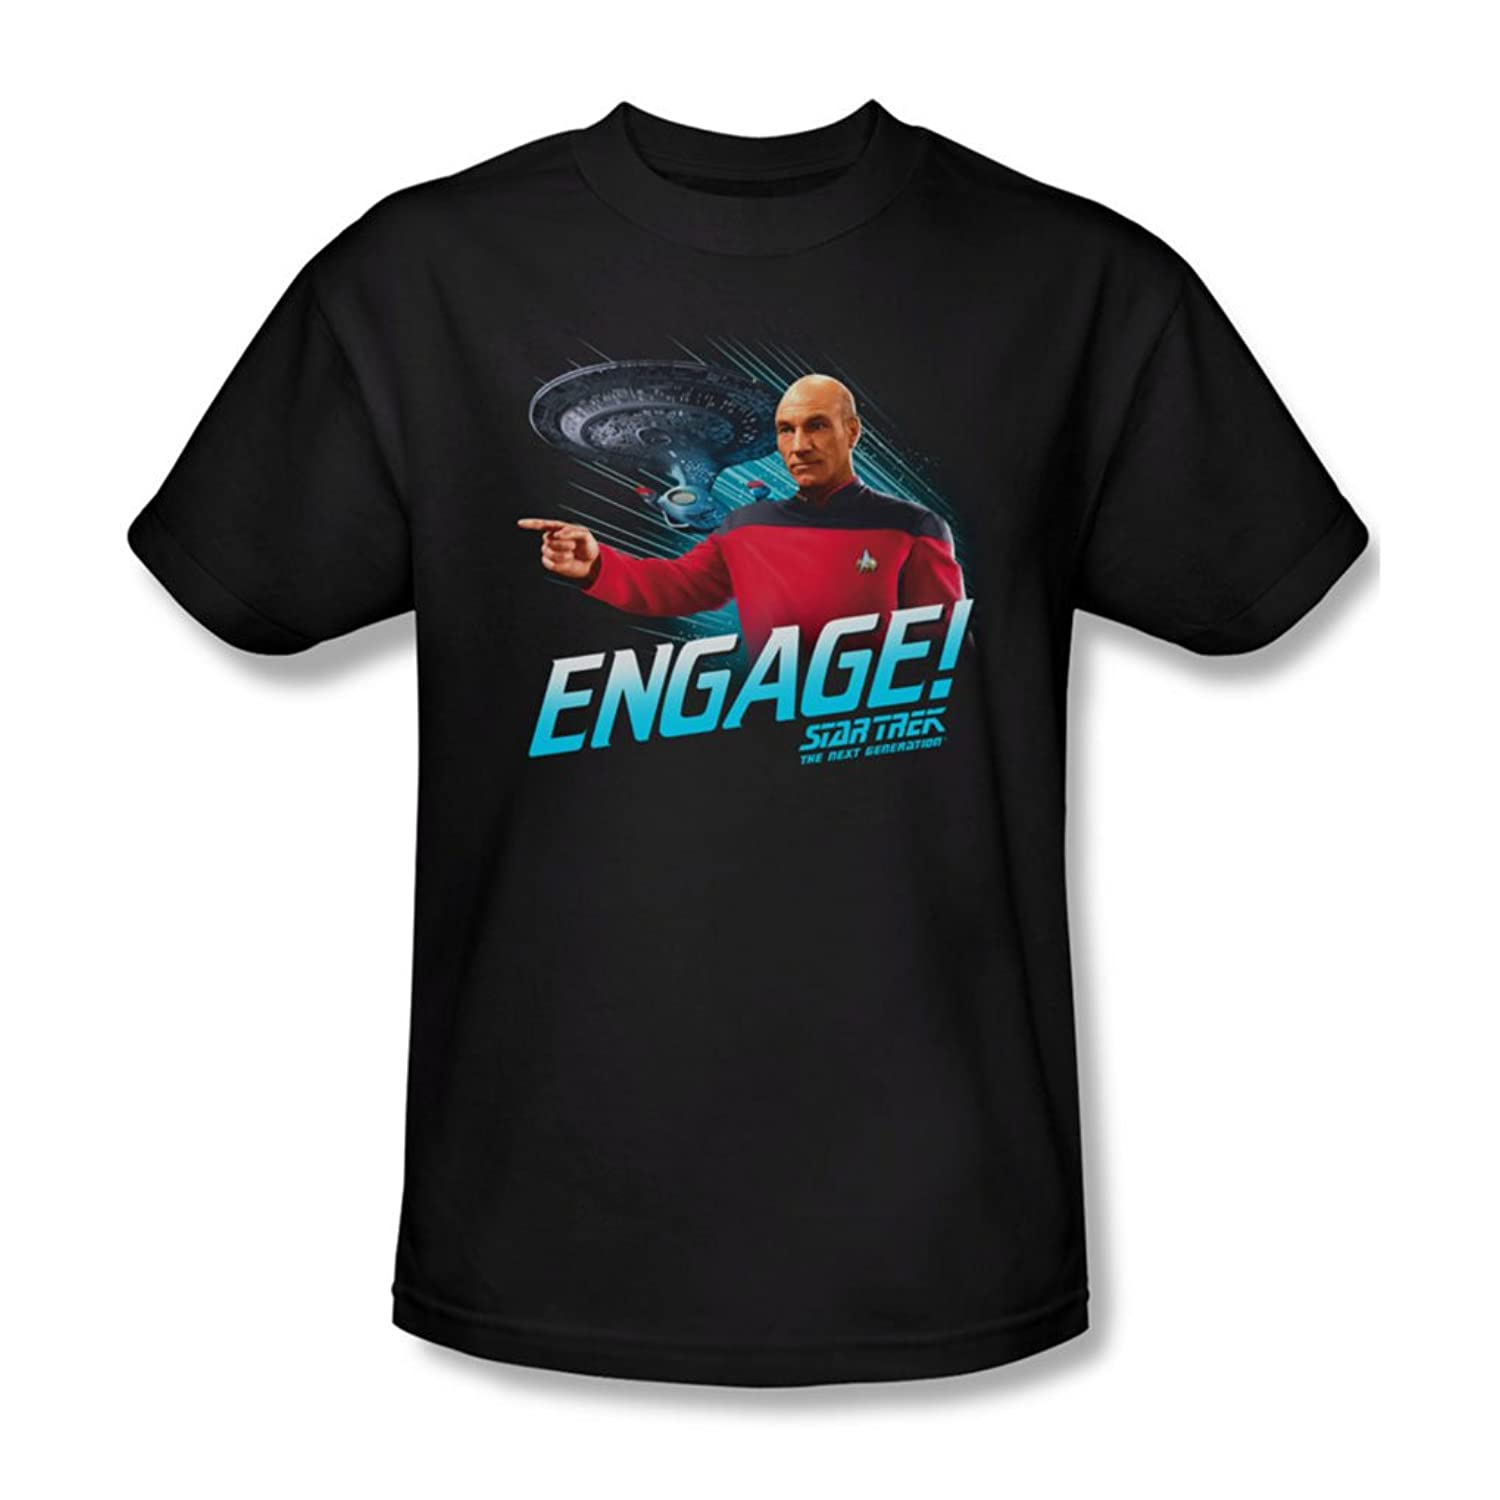 Star Trek - Mens Engage T-Shirt In Black